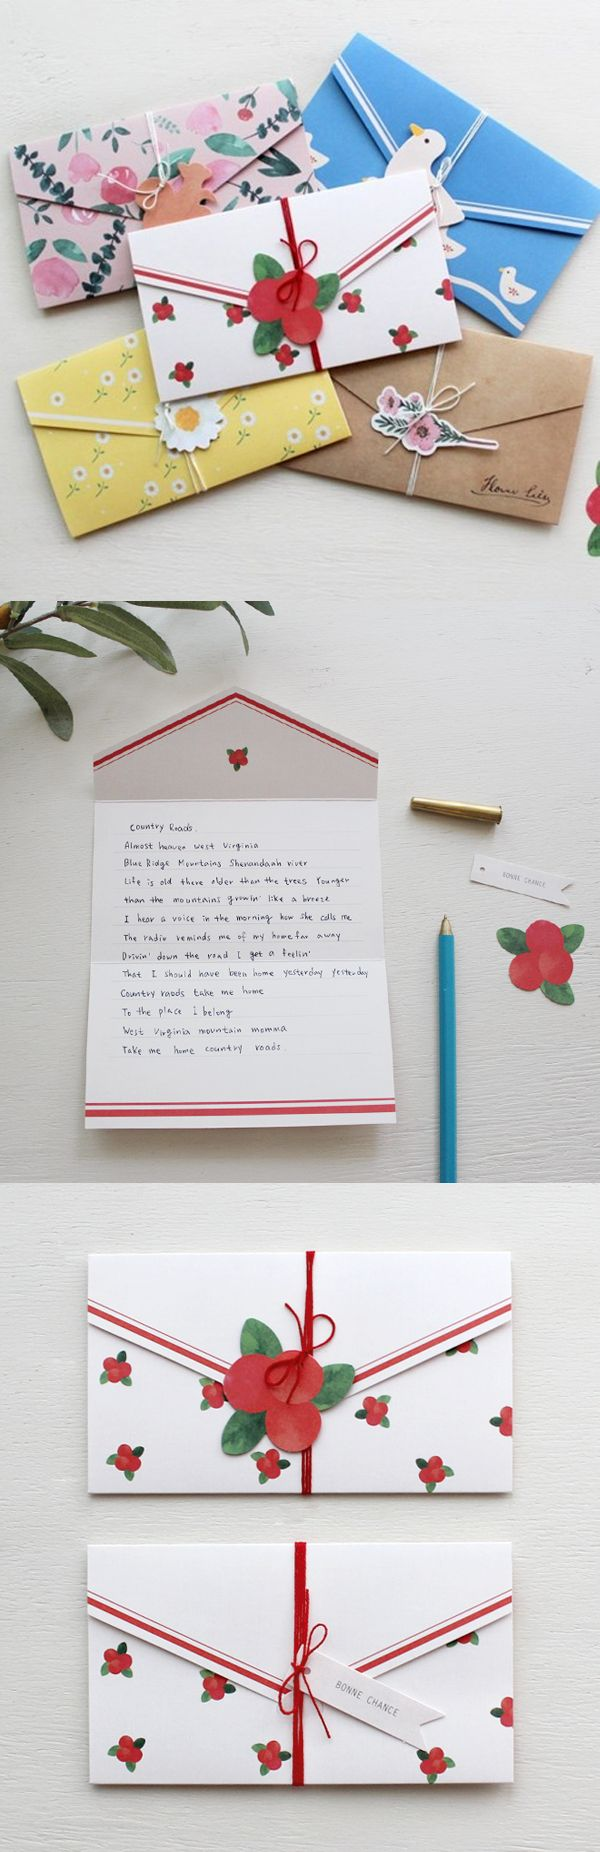 The Natural Pattern Envelope Card makes letter writing easier than ever. This all inclusive stationery set is everything you'll need to write the most touching notes to friends and loved ones! ^.~*